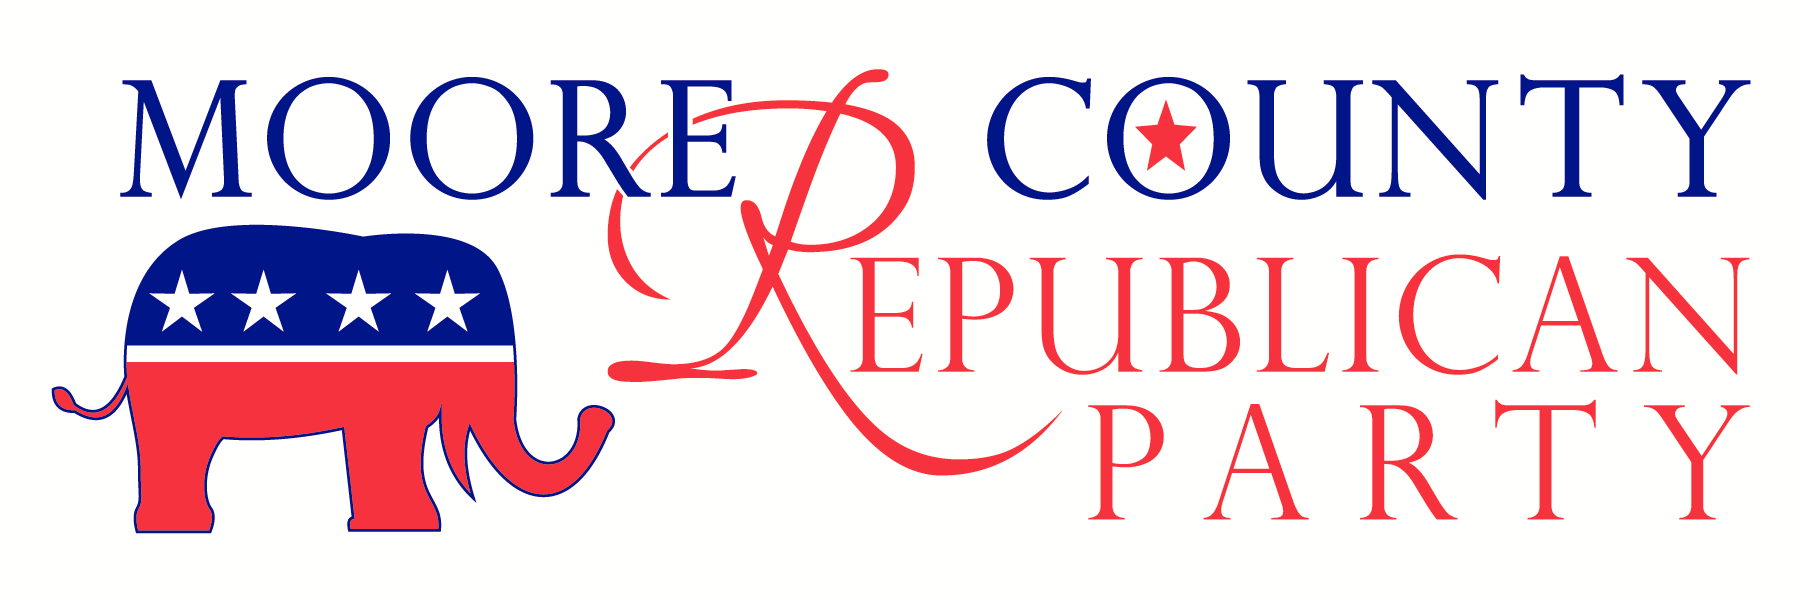 Moore County Republican Party